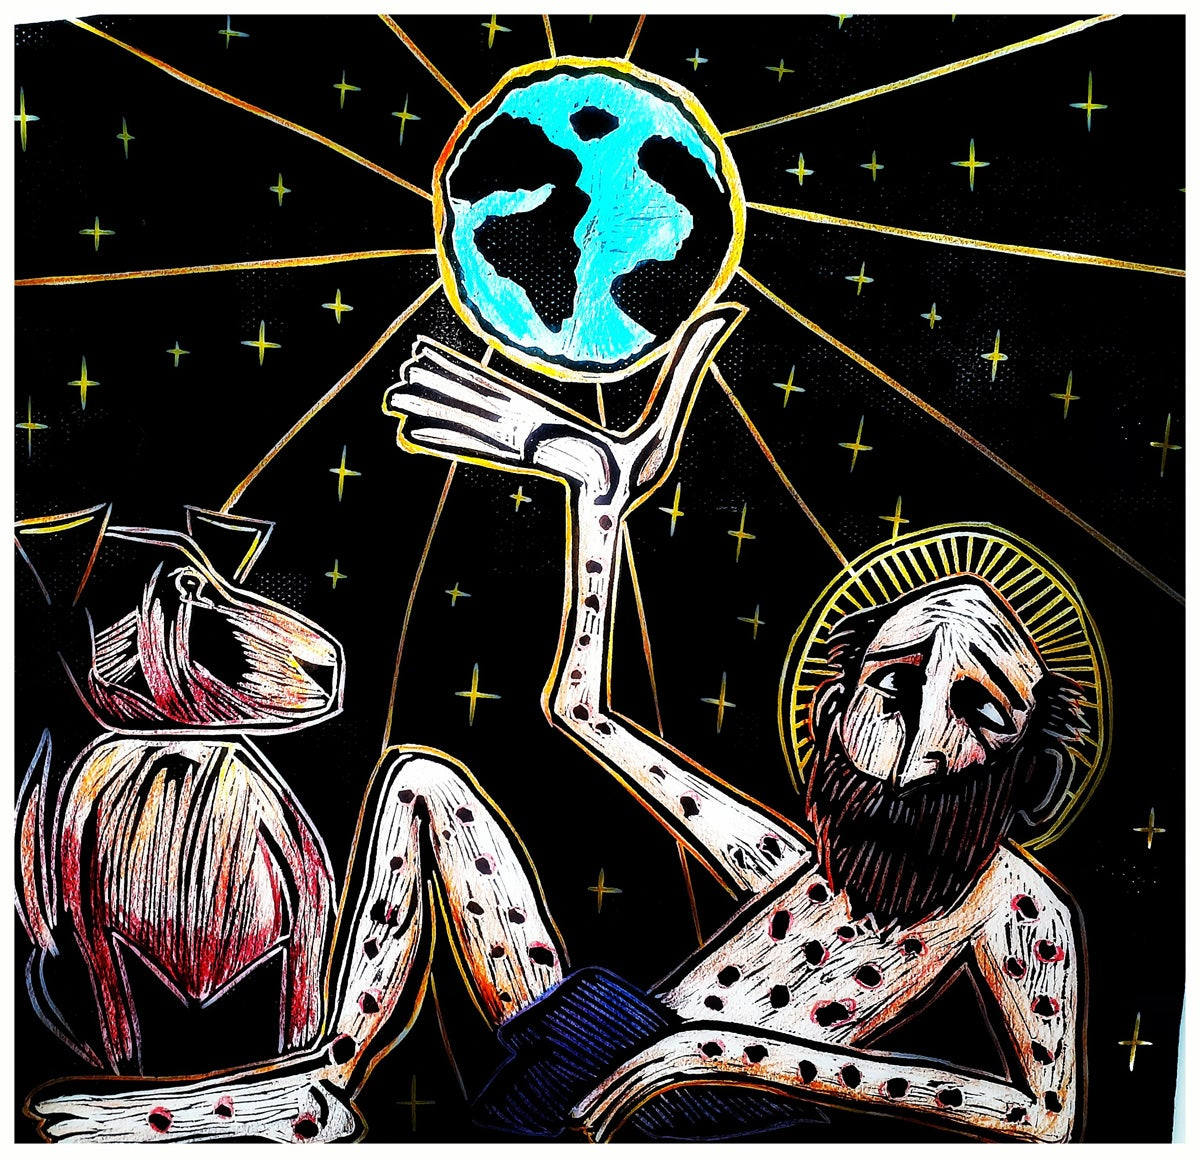 HAND COLORED ST. LAZARUS SAVES THE WORLD